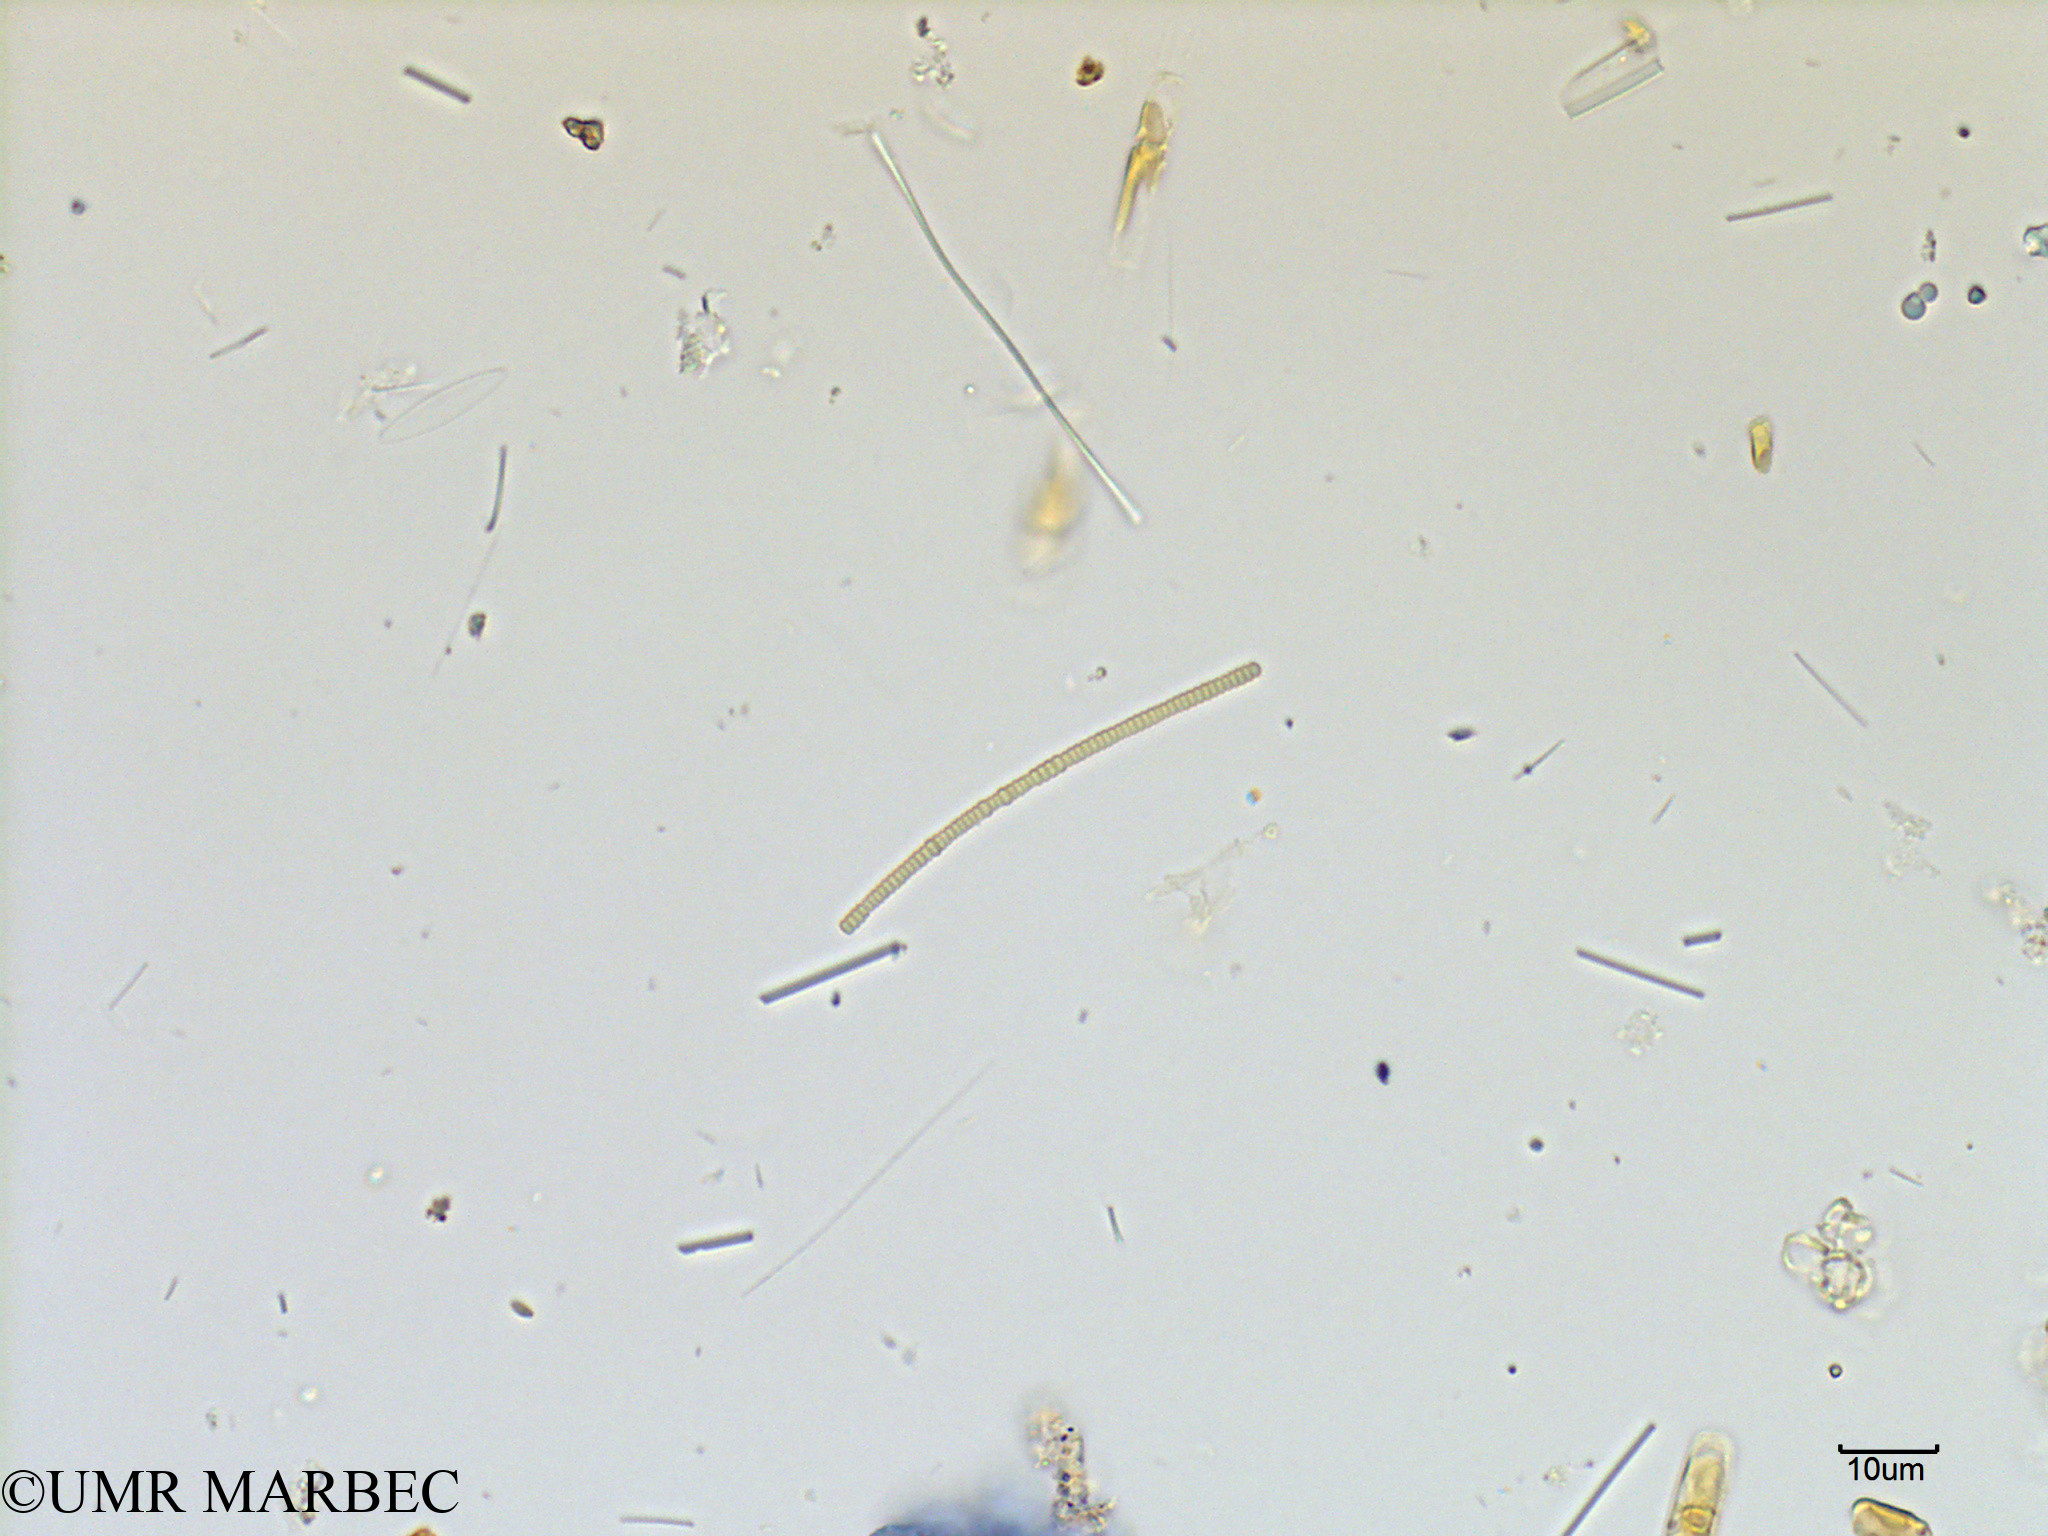 phyto/Scattered_Islands/mayotte_lagoon/SIREME May 2016/Oscillatoriale spp (MAY7_cyano petite2).tif(copy).jpg